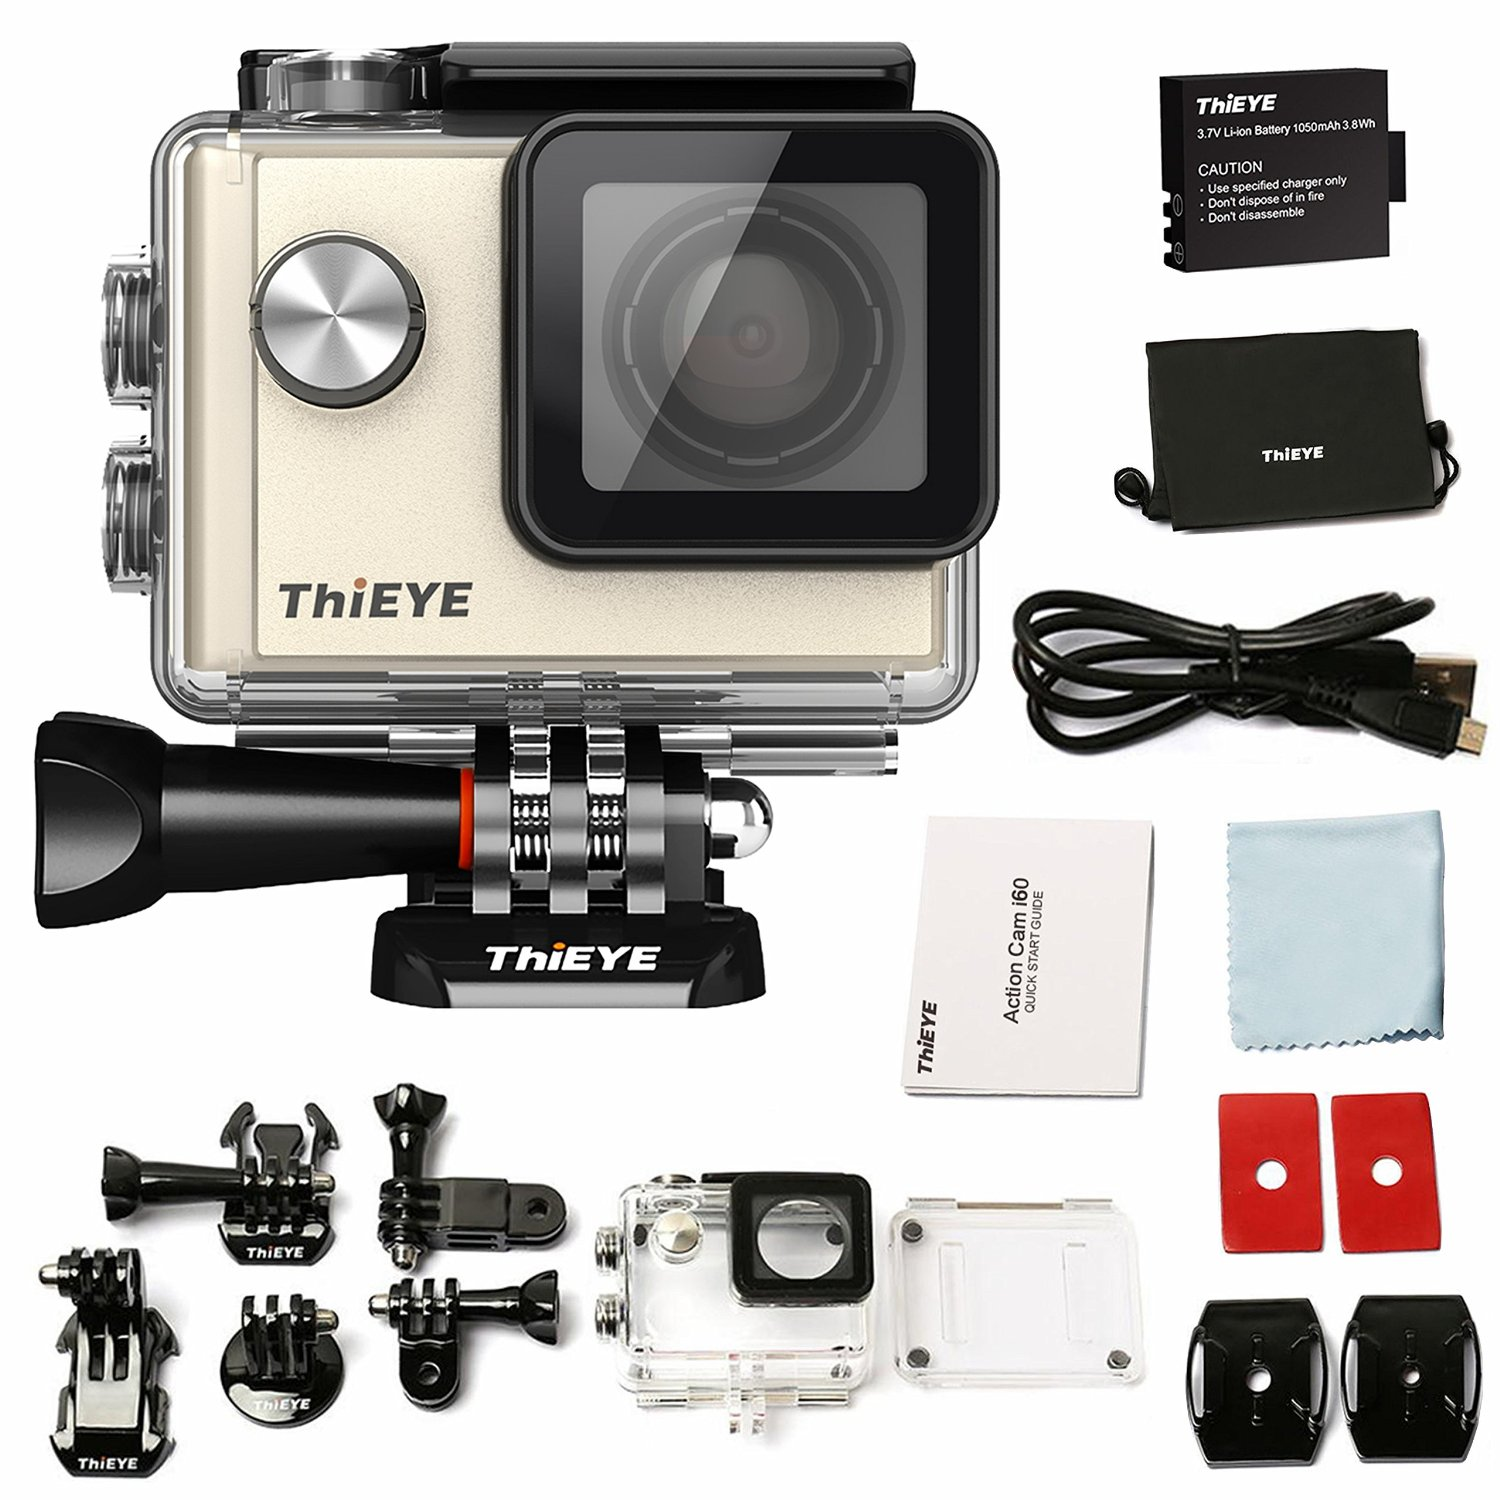 Action Camera ThiEYE i60+ 4k WiFi WaterproofUltra HD Sports Action cam, DV Camcorder,2 inch LCD Screen, 170 Degree Wide Angle Lens with Batteries(2-Pack) and Accessories Kit